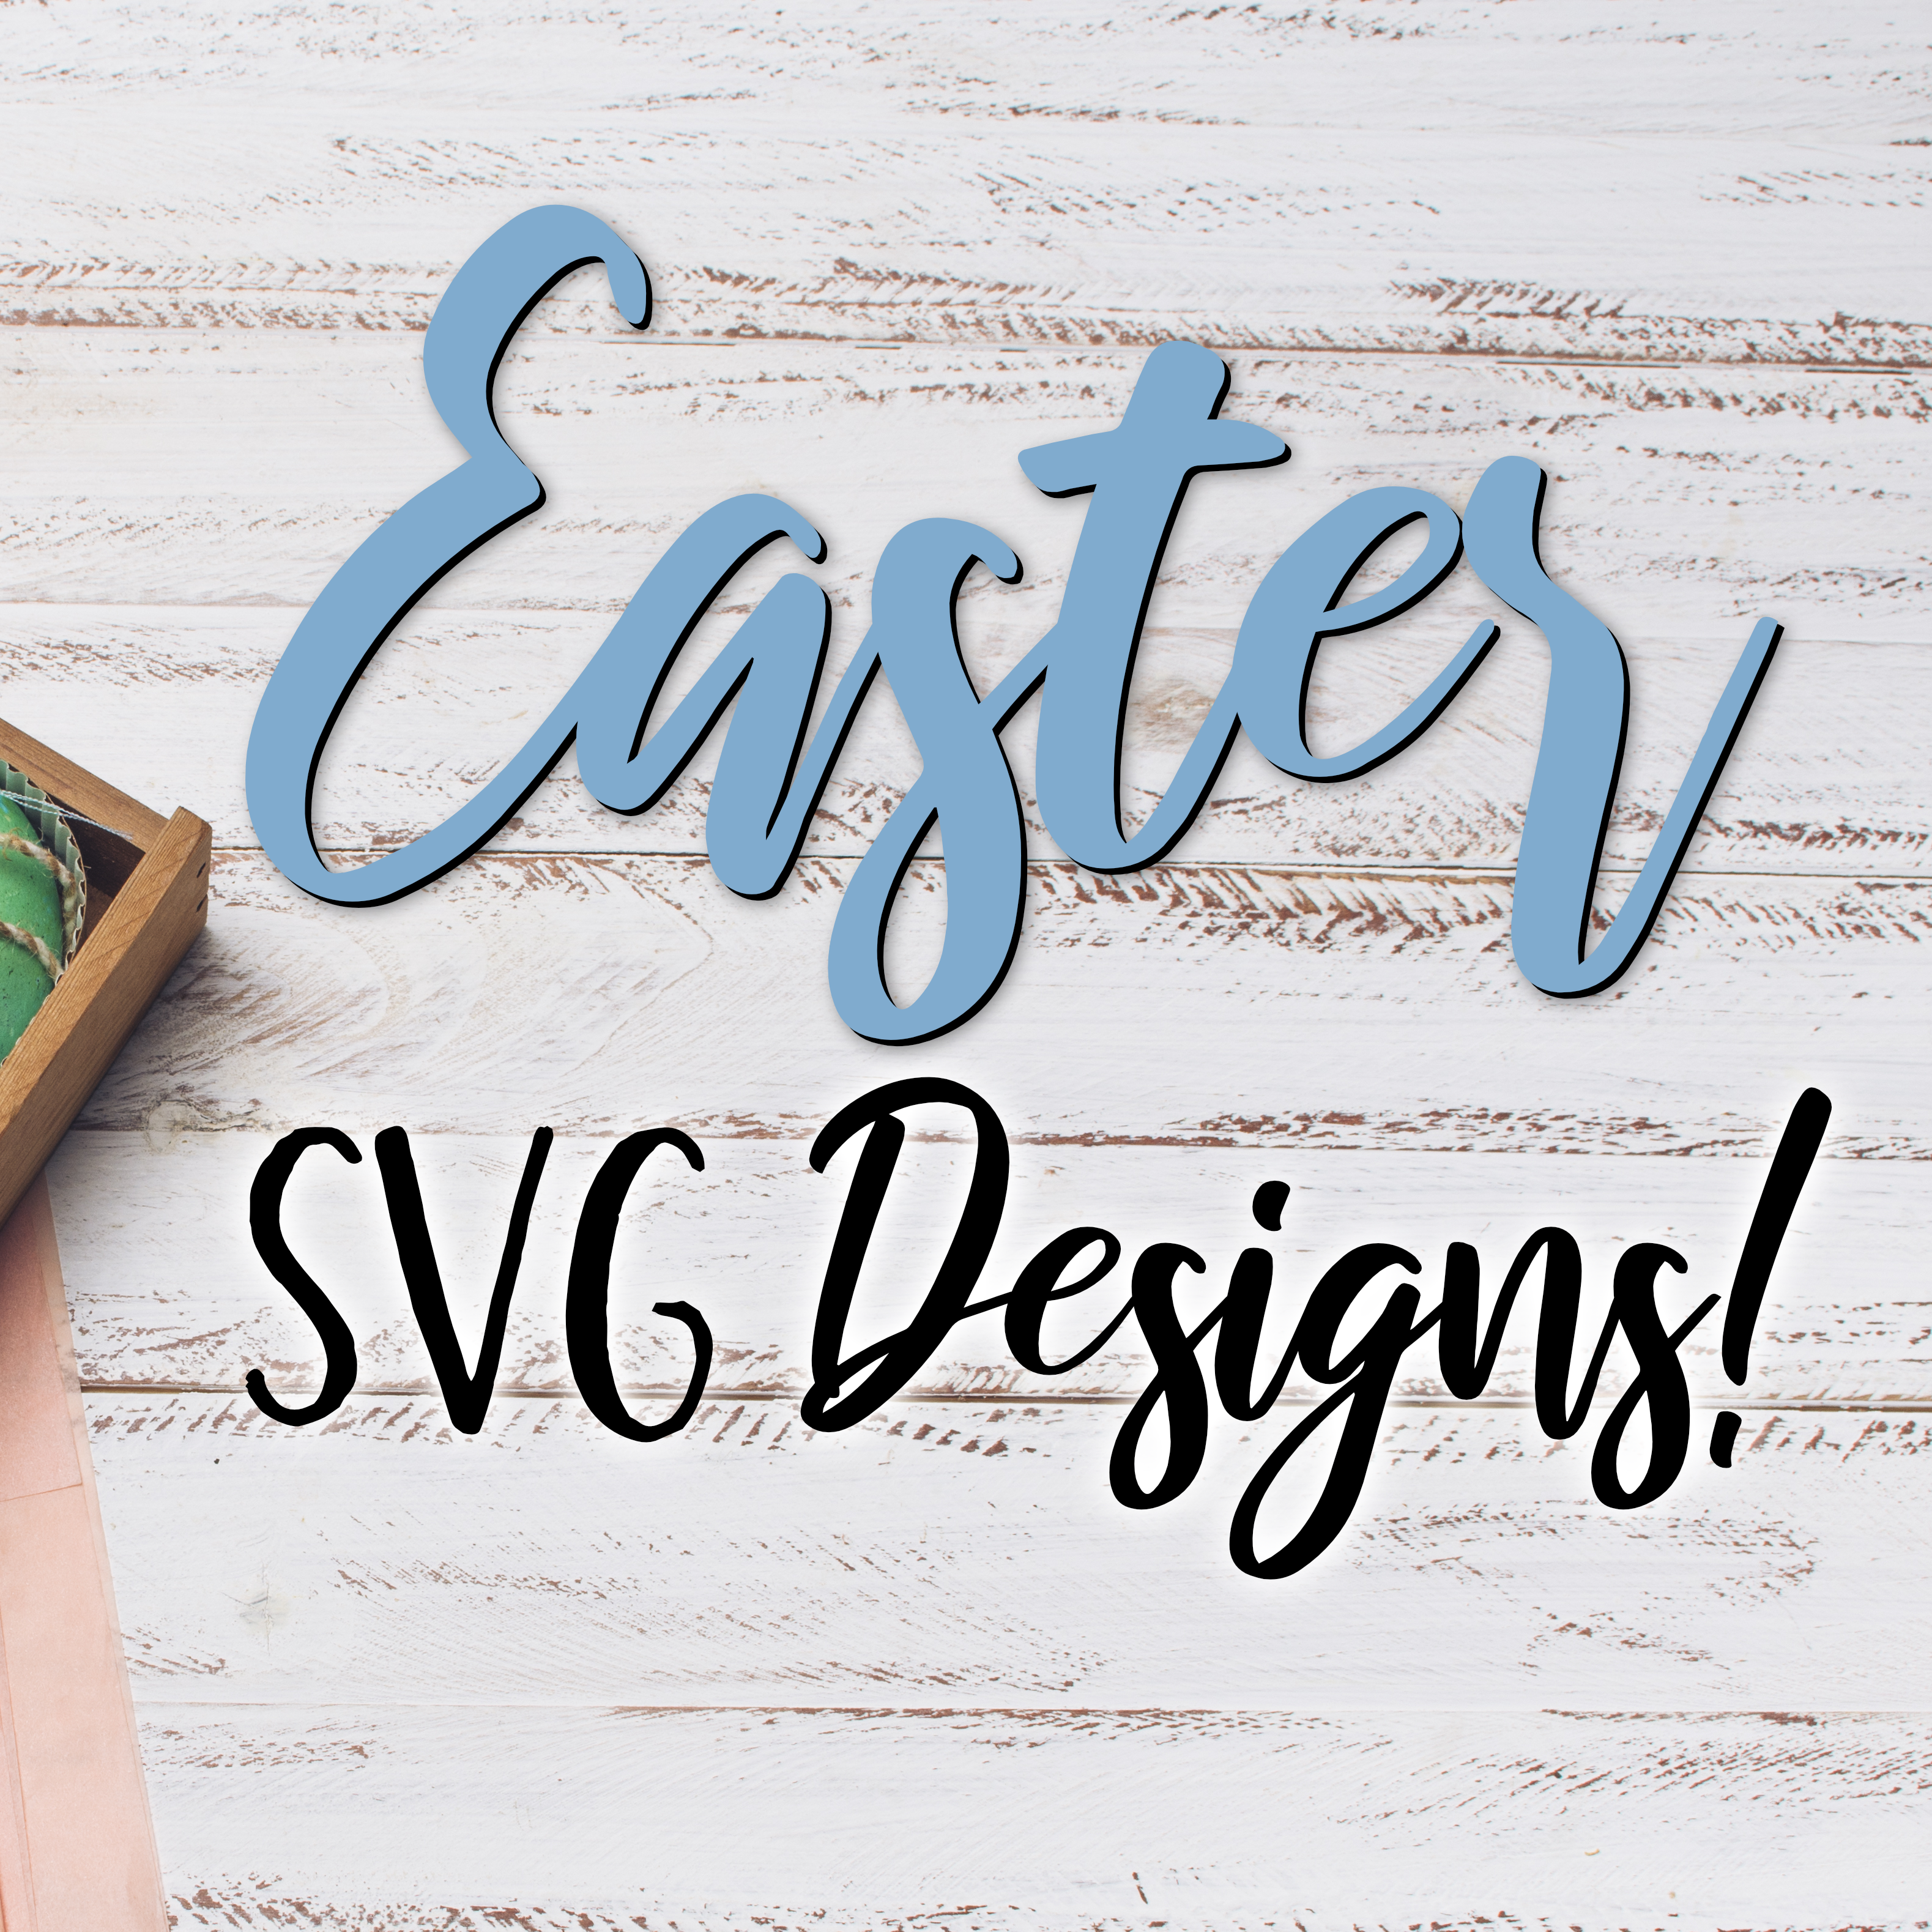 Easter SVG Designs